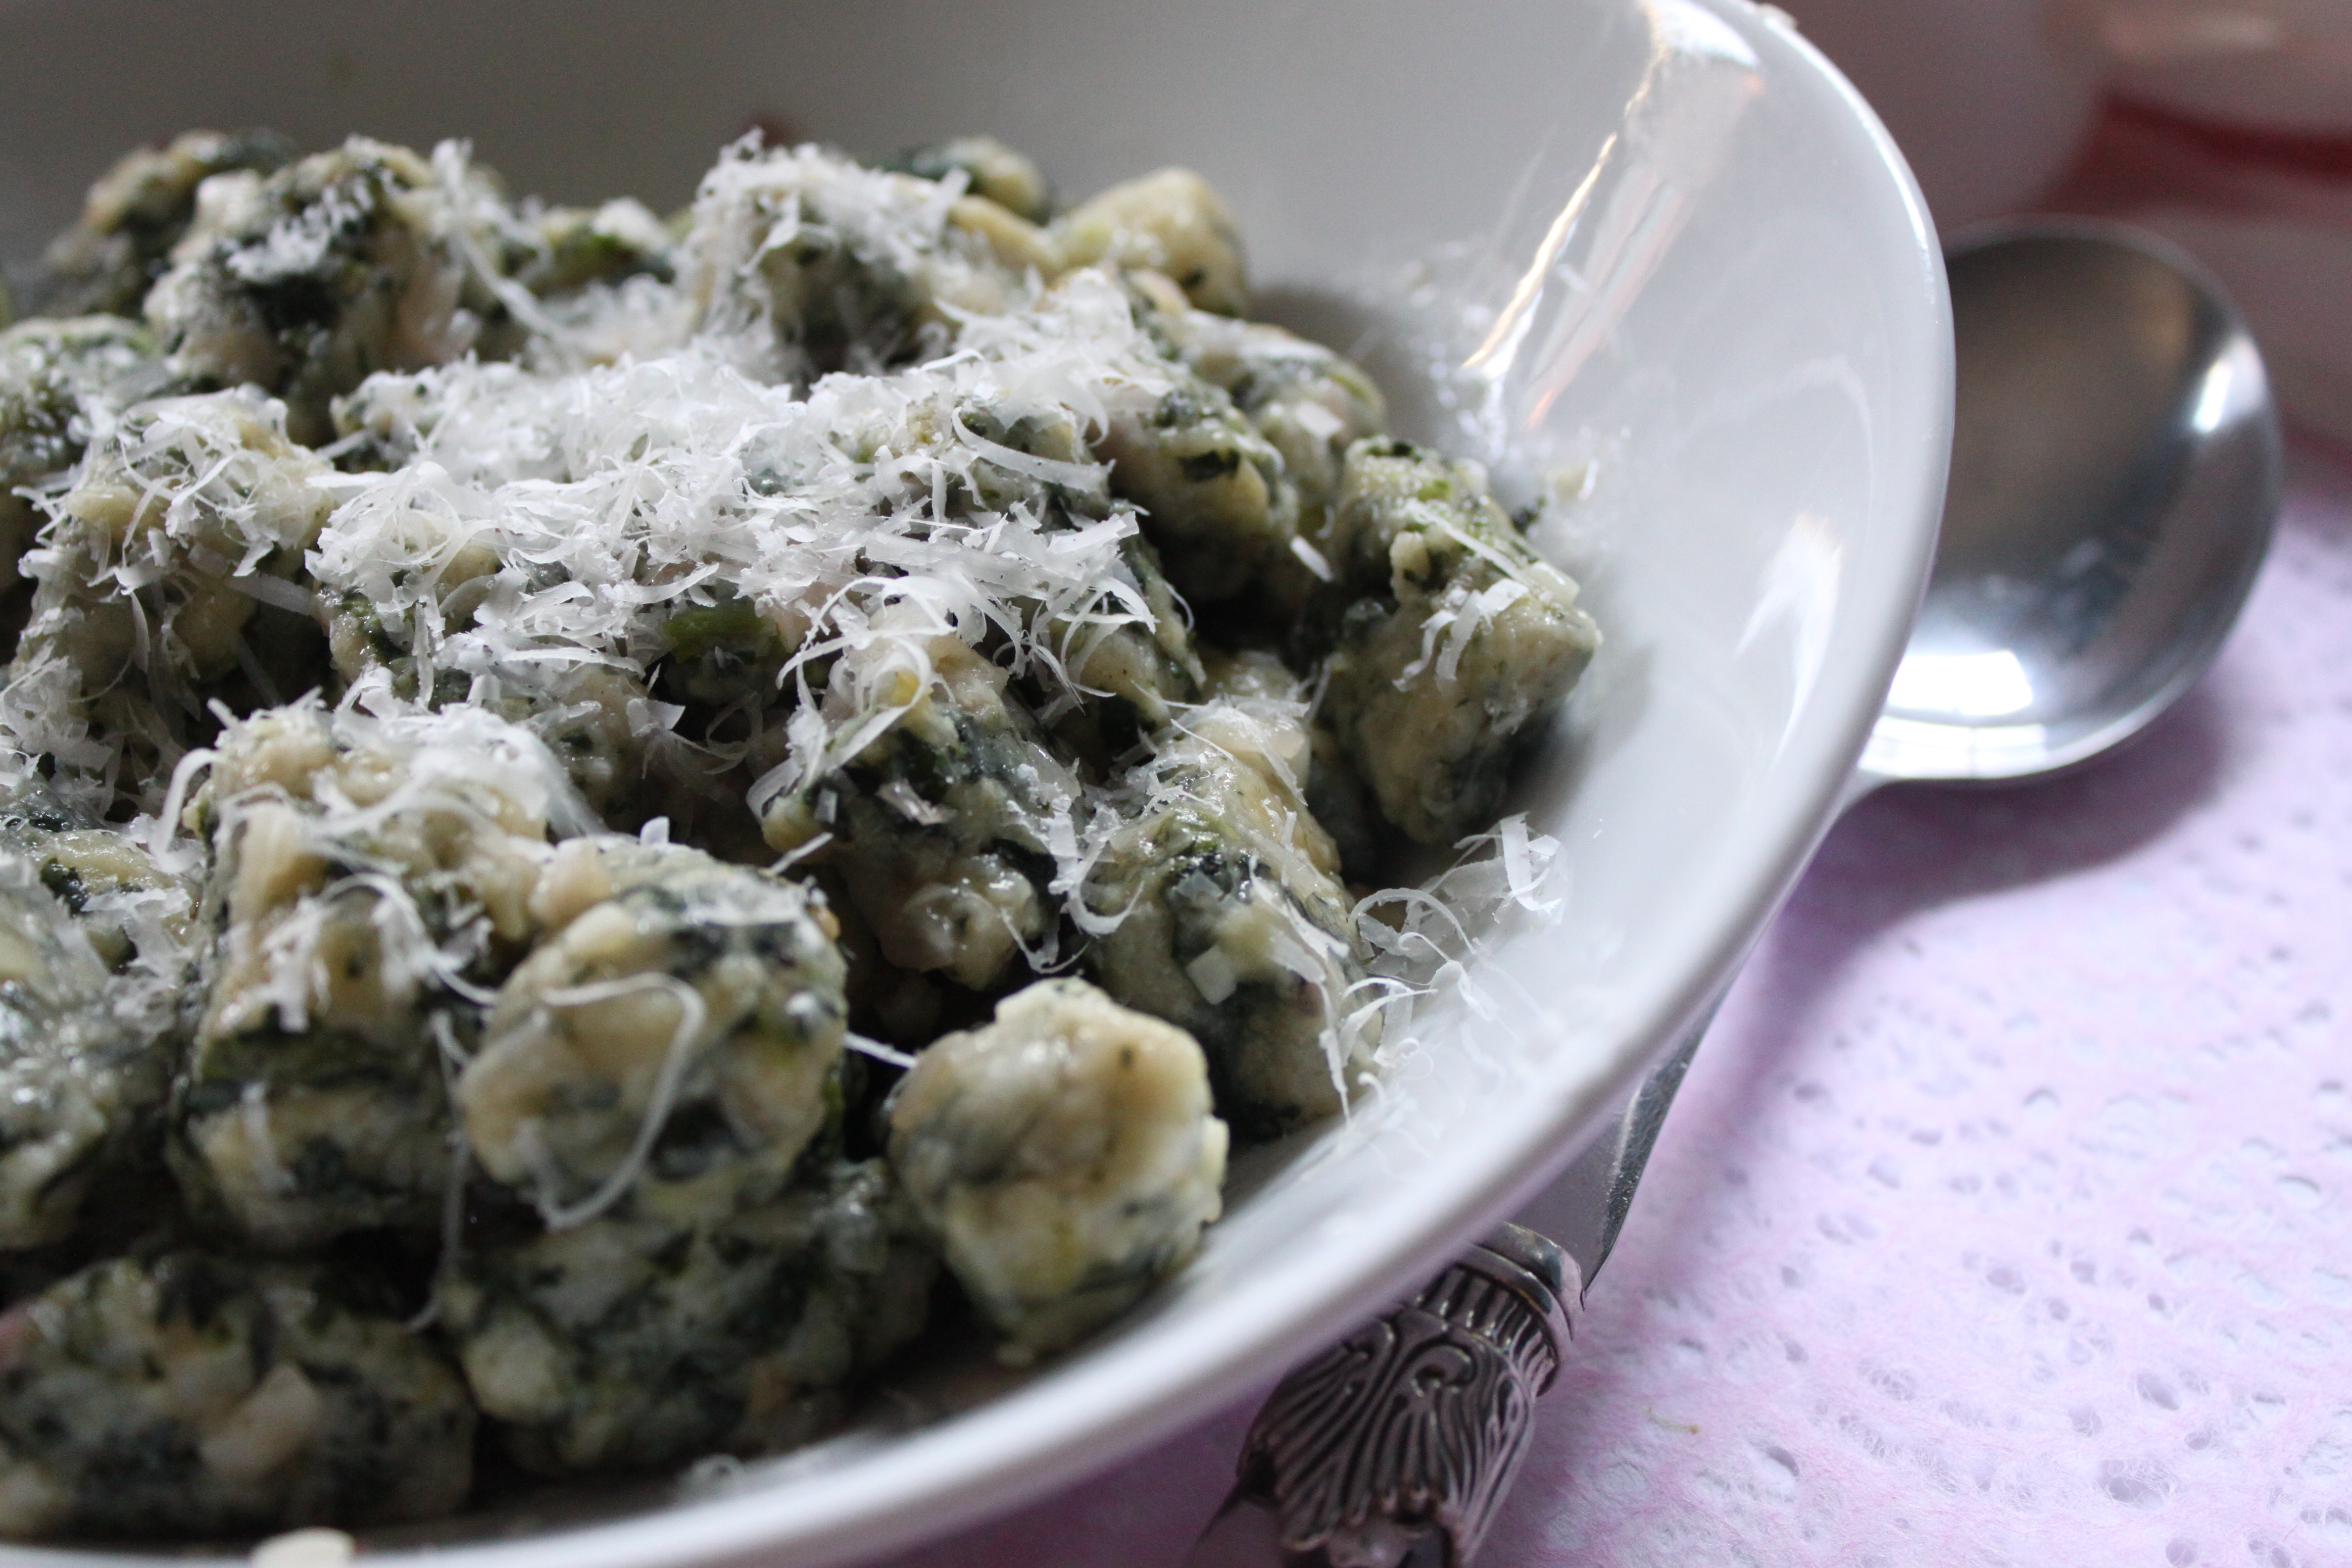 Oquis del 29 hungry sofia i missed last months oquis del 29 post due to technical difficulties i was in the middle of trying this recipe for bread and spinach gnocchi for the forumfinder Gallery